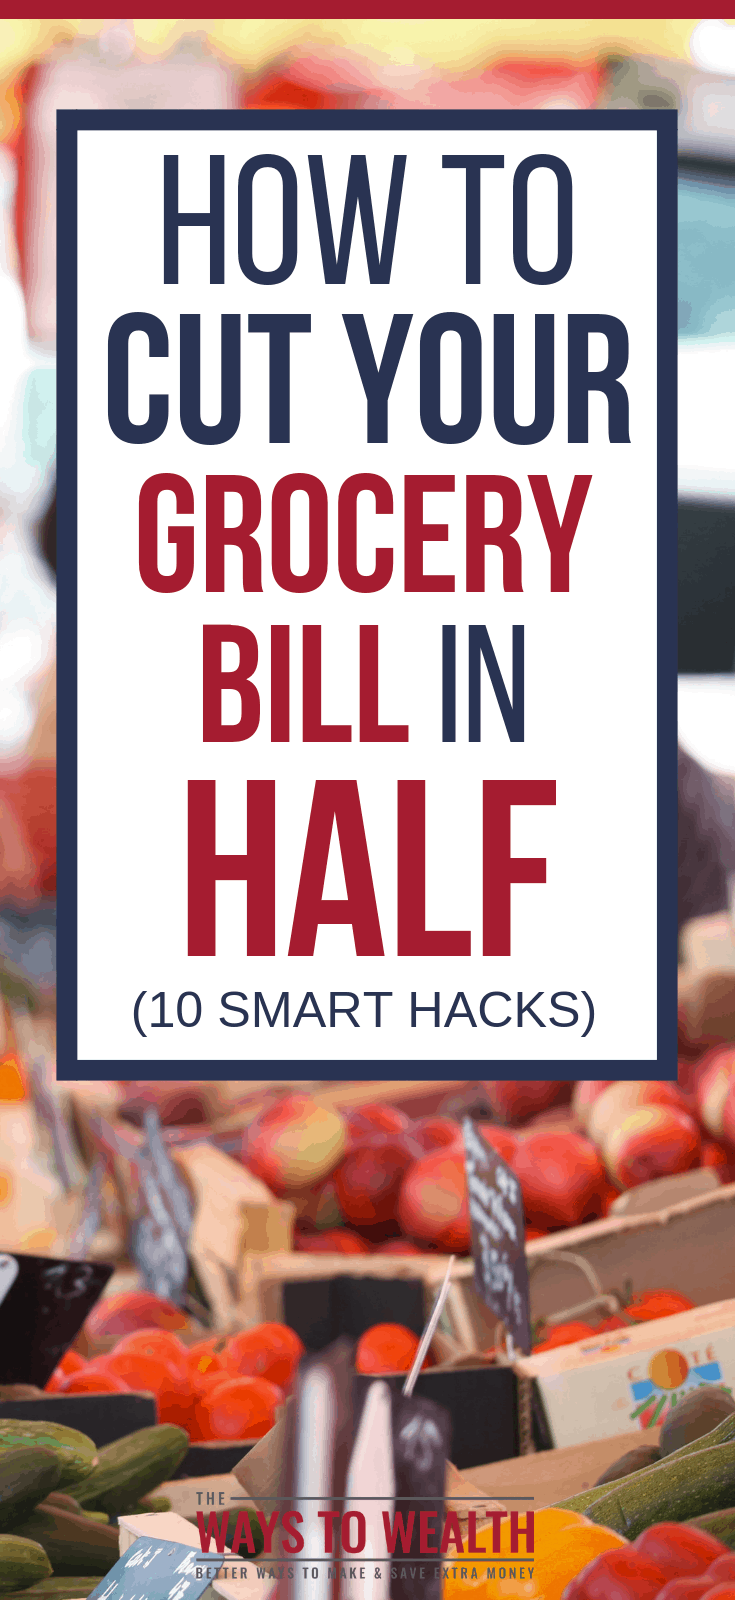 How To Save Money On GroceriesDiscover the 10 best ways for how to save money on groceries. You can cut your grocery bill in half with ten simple tips.#savemoney #thewaystowealth #groceries #frugal #frugalliving #frugalmeals